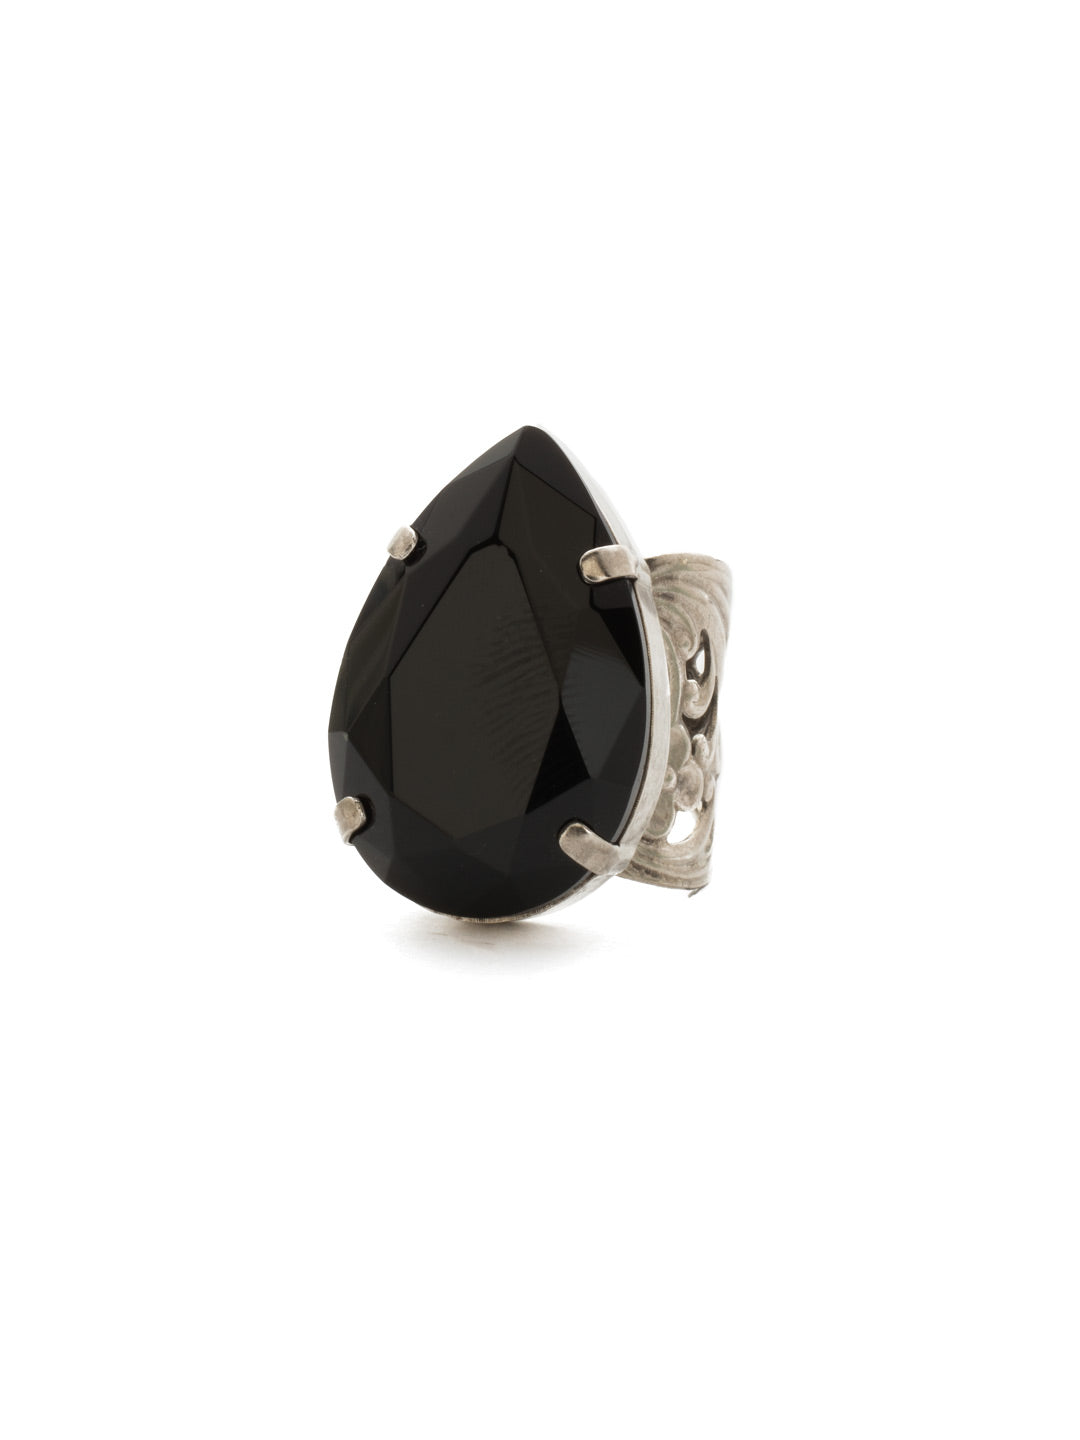 Teardrop Cocktail Ring - RCM25ASBON